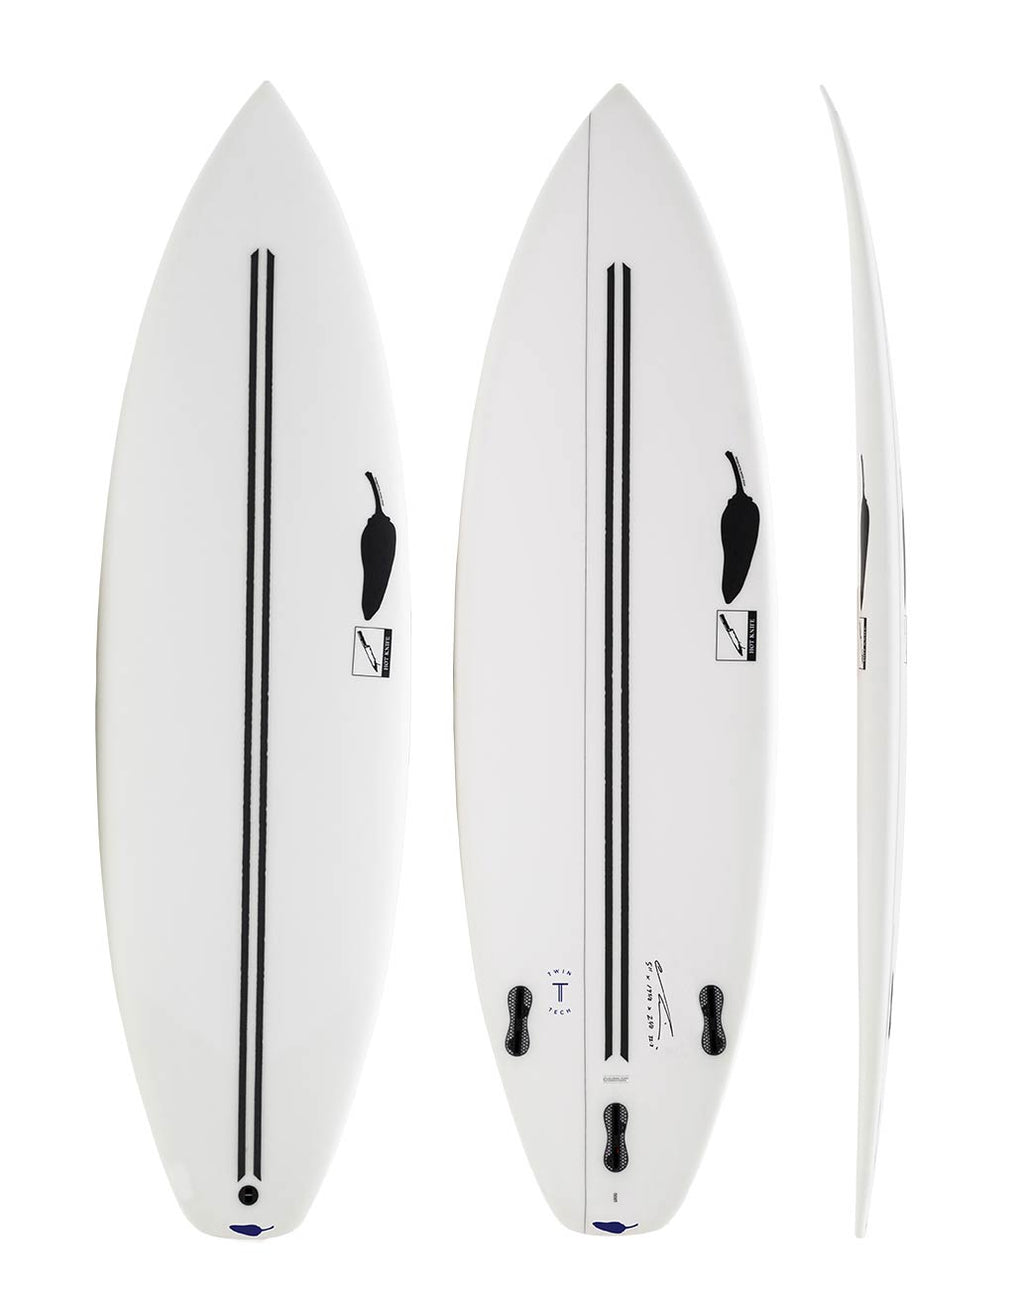 Hot Knife 6'2 x 19 7/8 x 2 3/4 x 35.5L - AKWA SURF